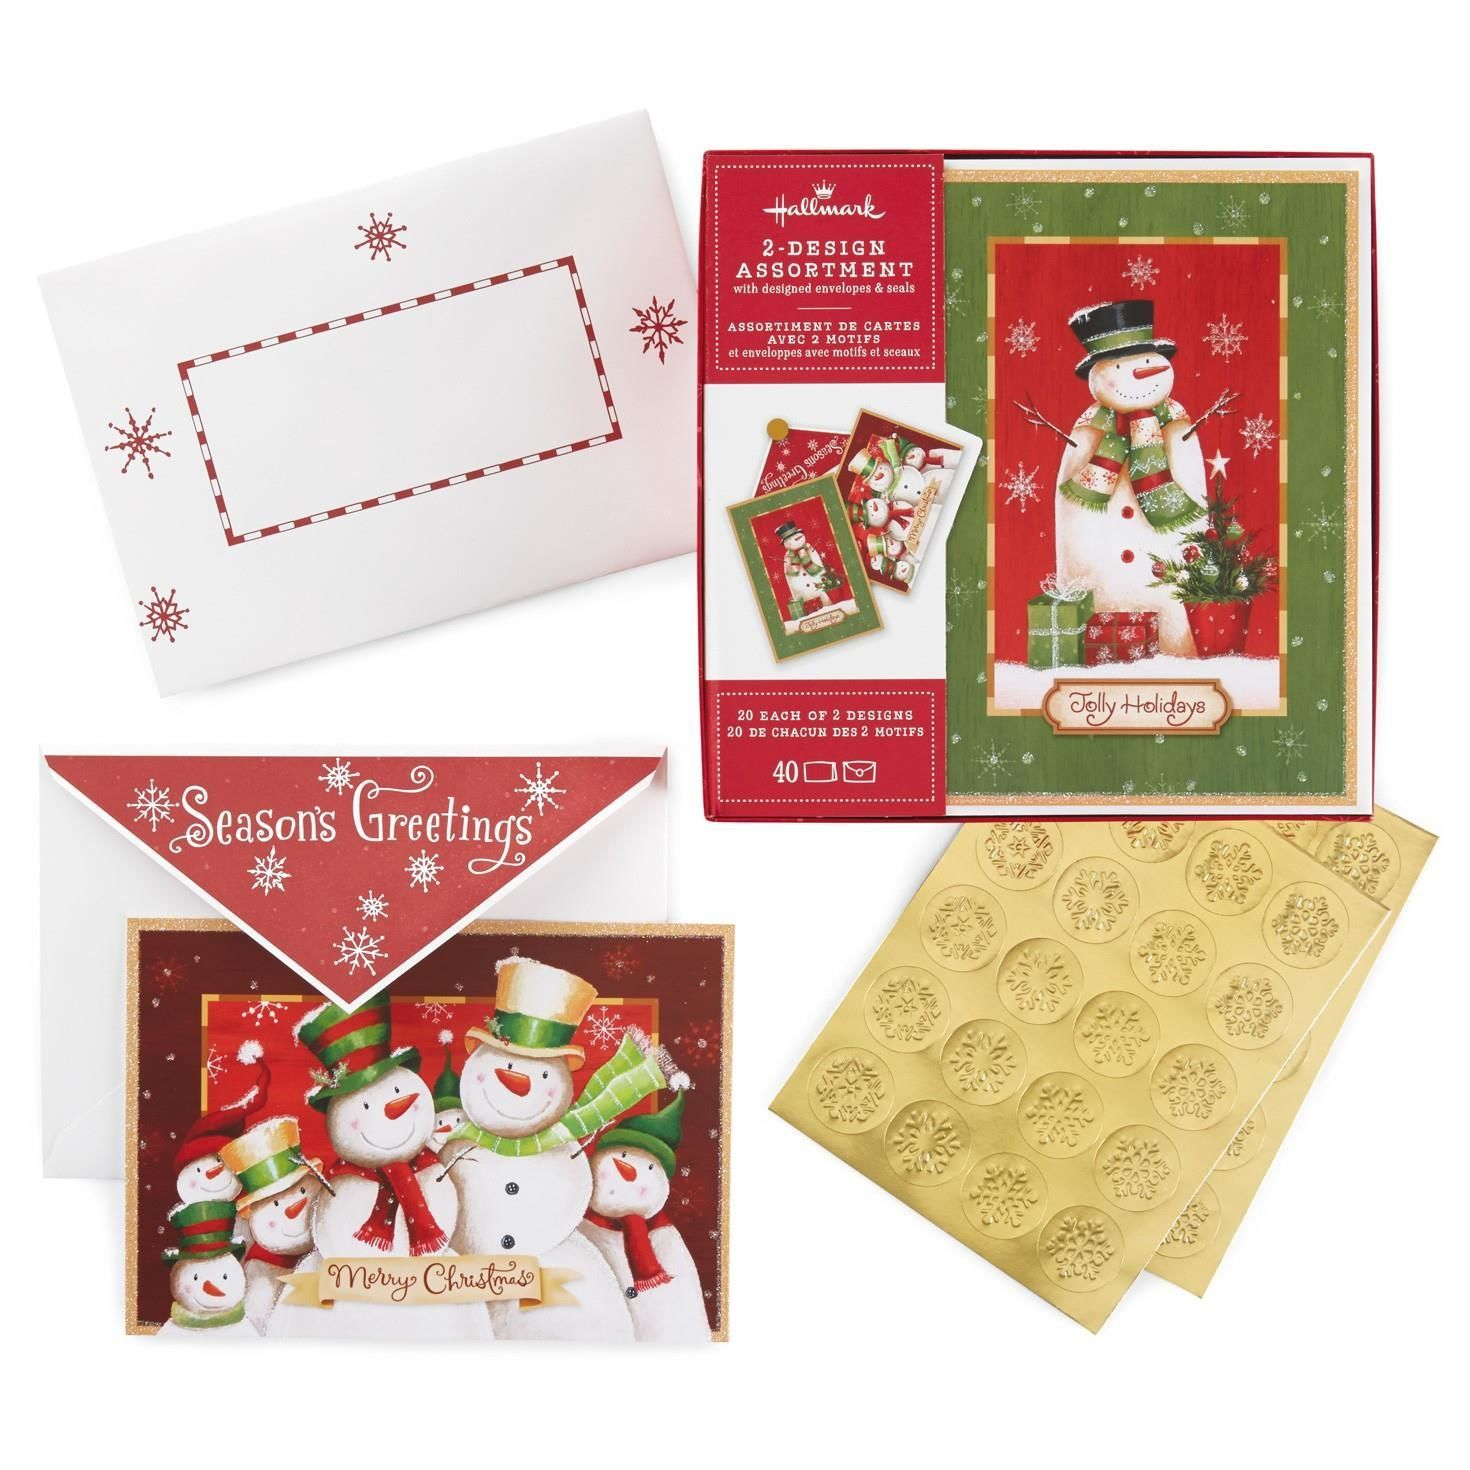 Snowman family and snowman 2 pack boxed christmas cards with seals snowman family and snowman 2 pack boxed christmas cards with seals kristyandbryce Choice Image